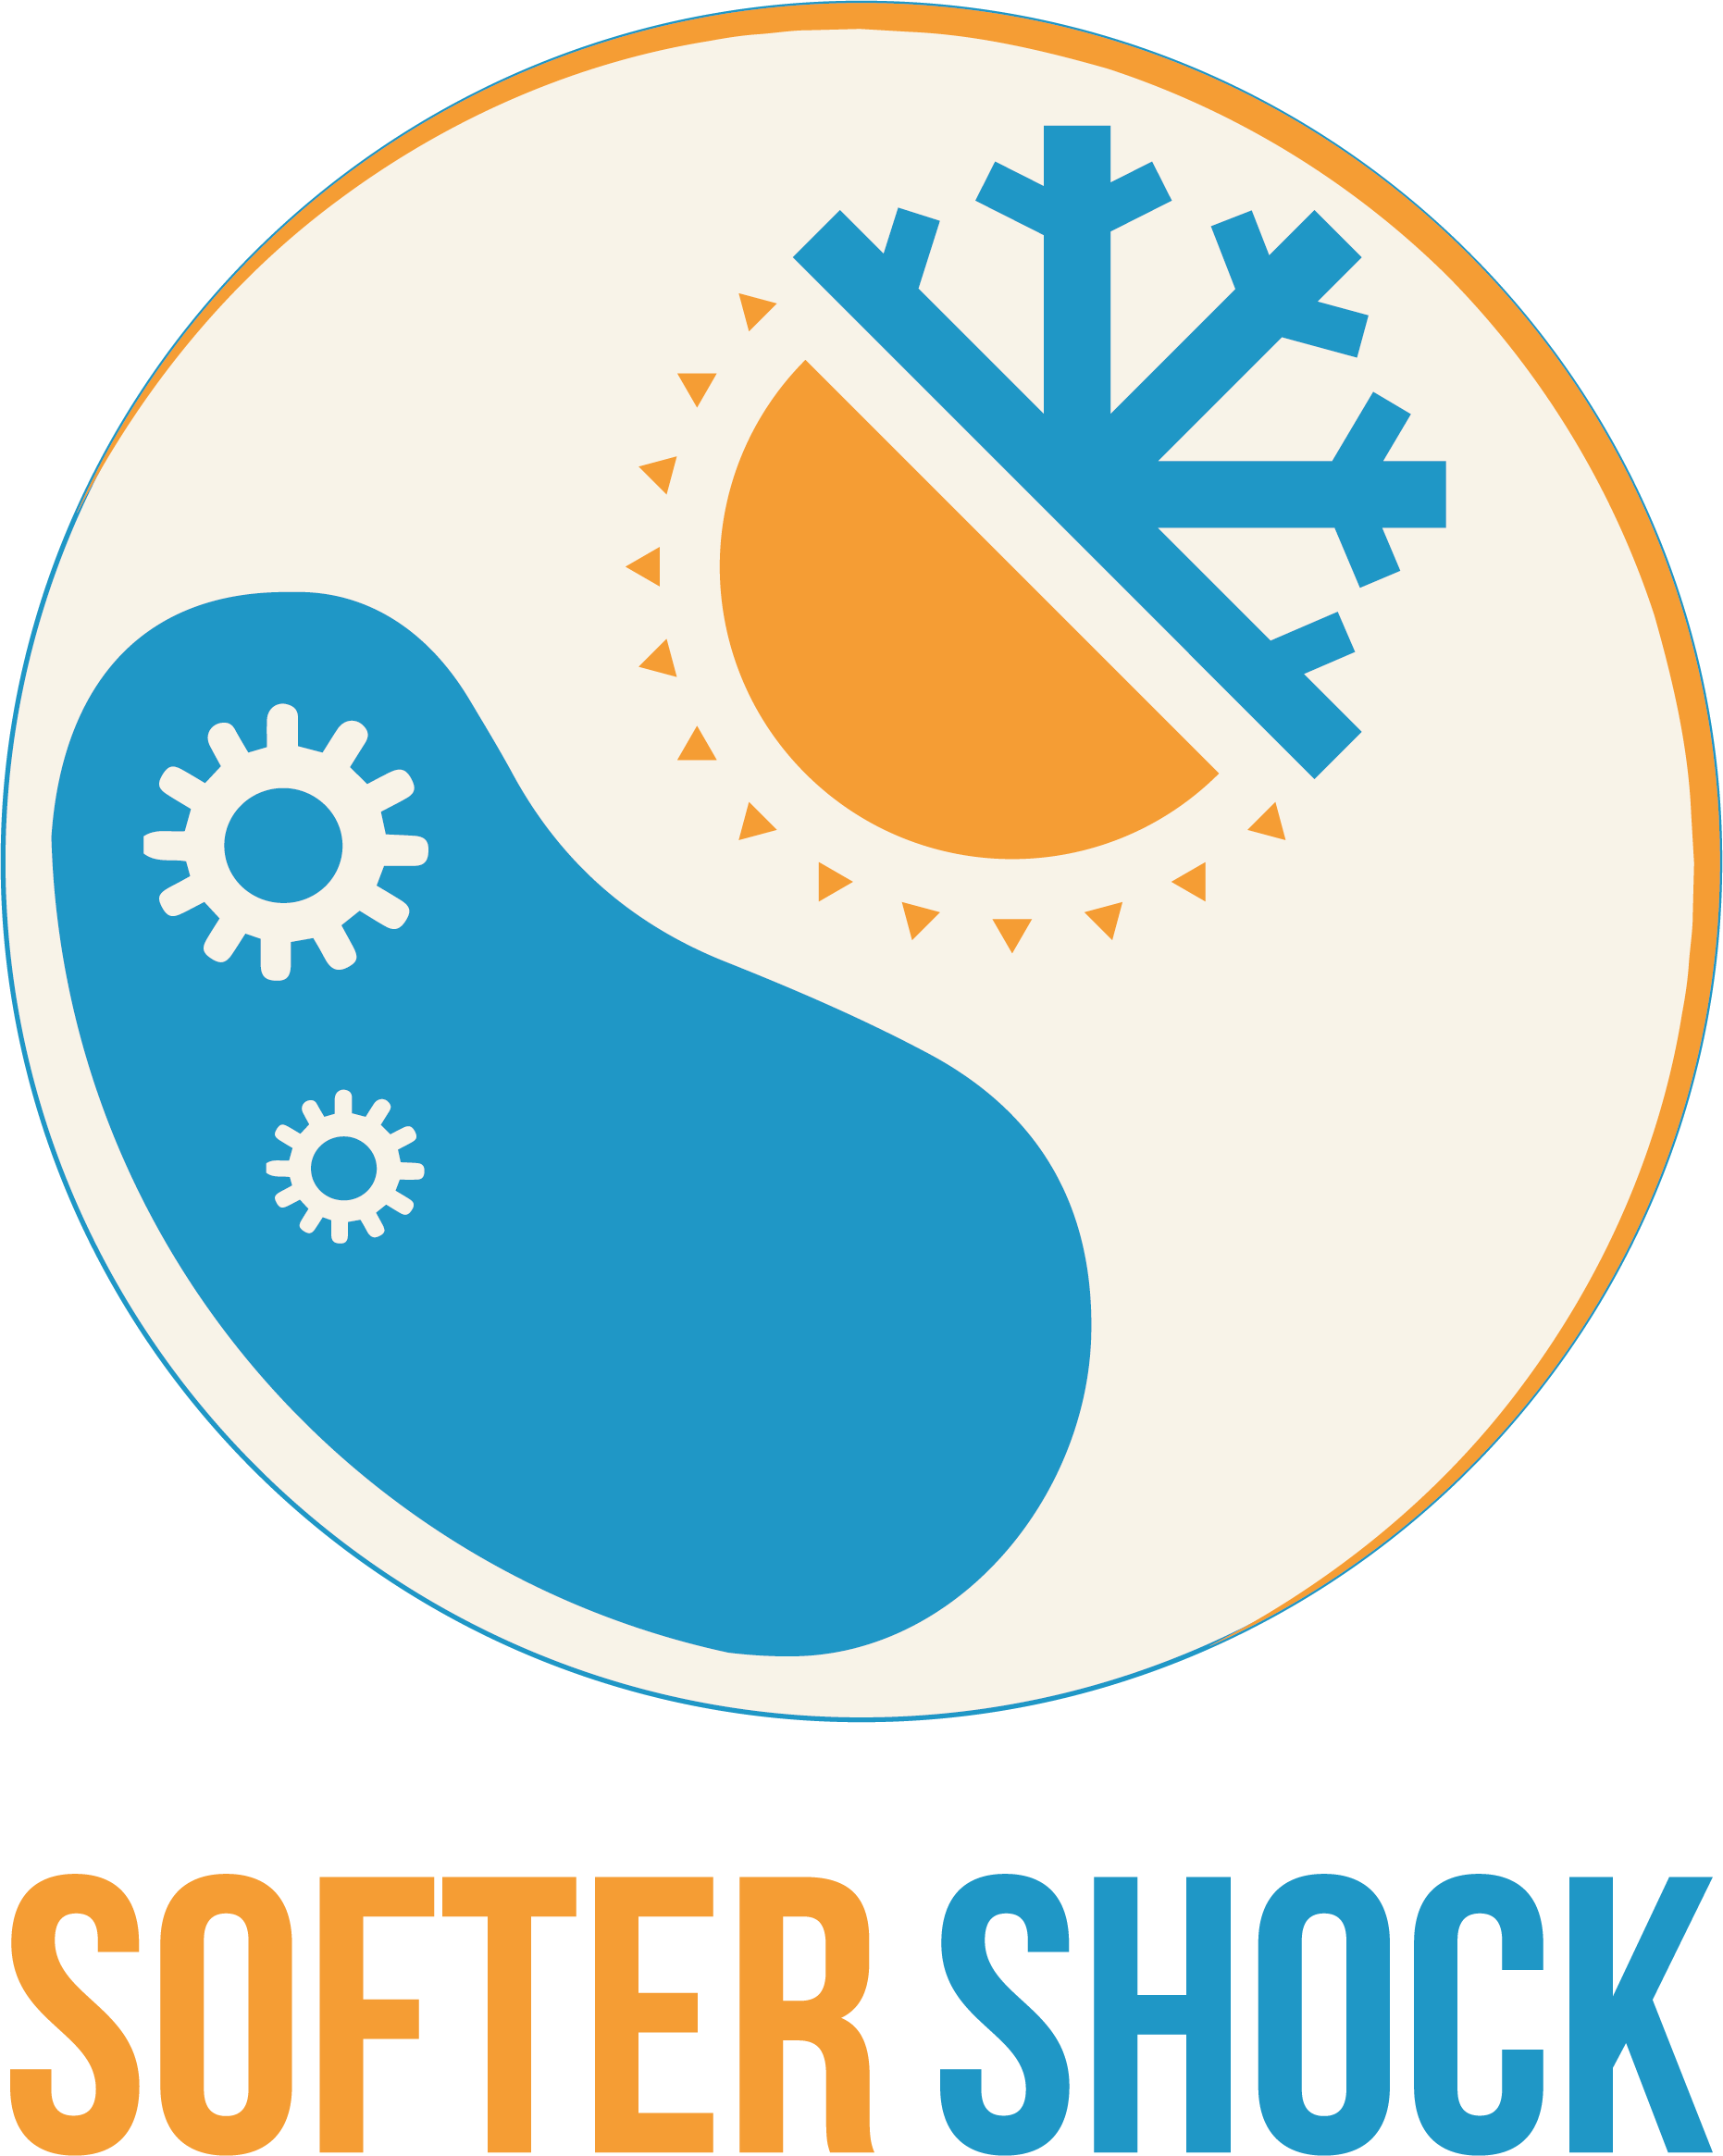 Igem ionis softer shock. Knowledge clipart torch knowledge